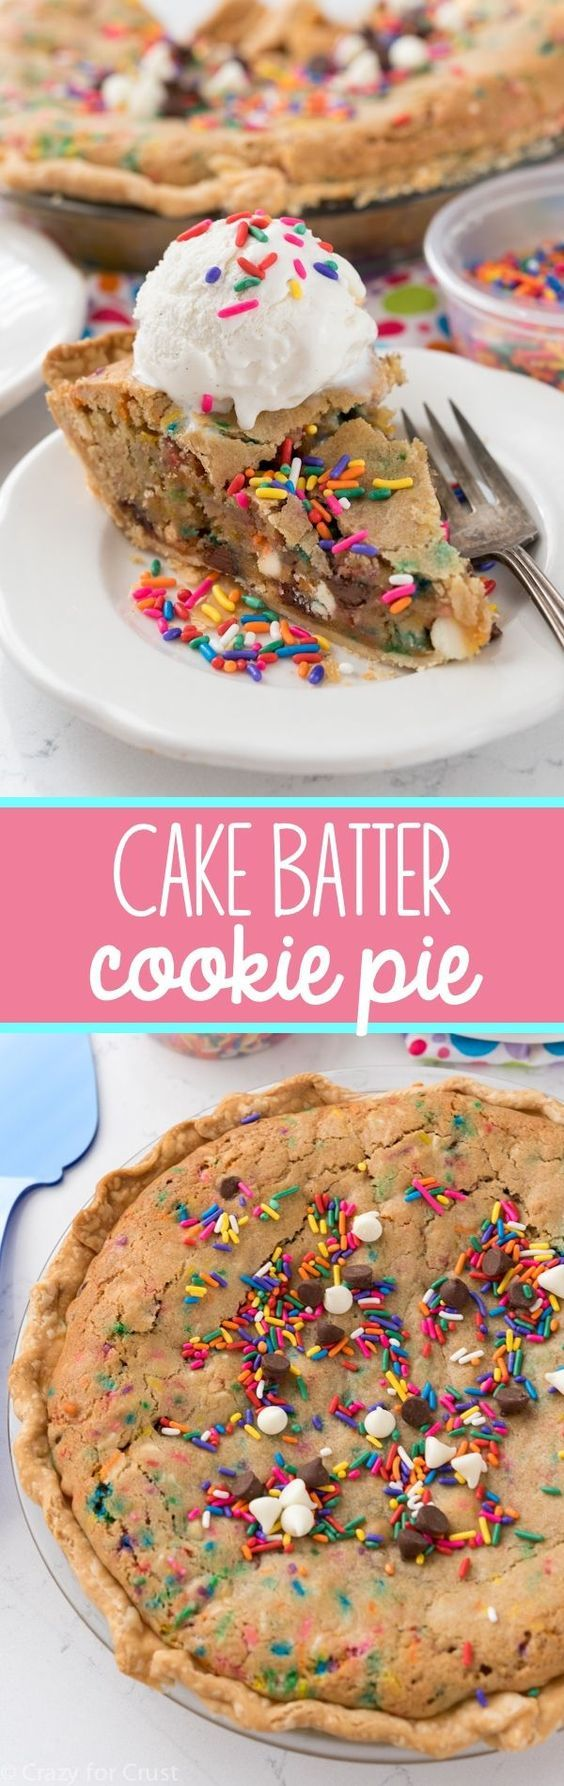 This Cake Batter Cookie Pie recipe couldn't be easier to make! It's a giant cake batter cookie in a pie crust. We couldn't stop eating this pie!